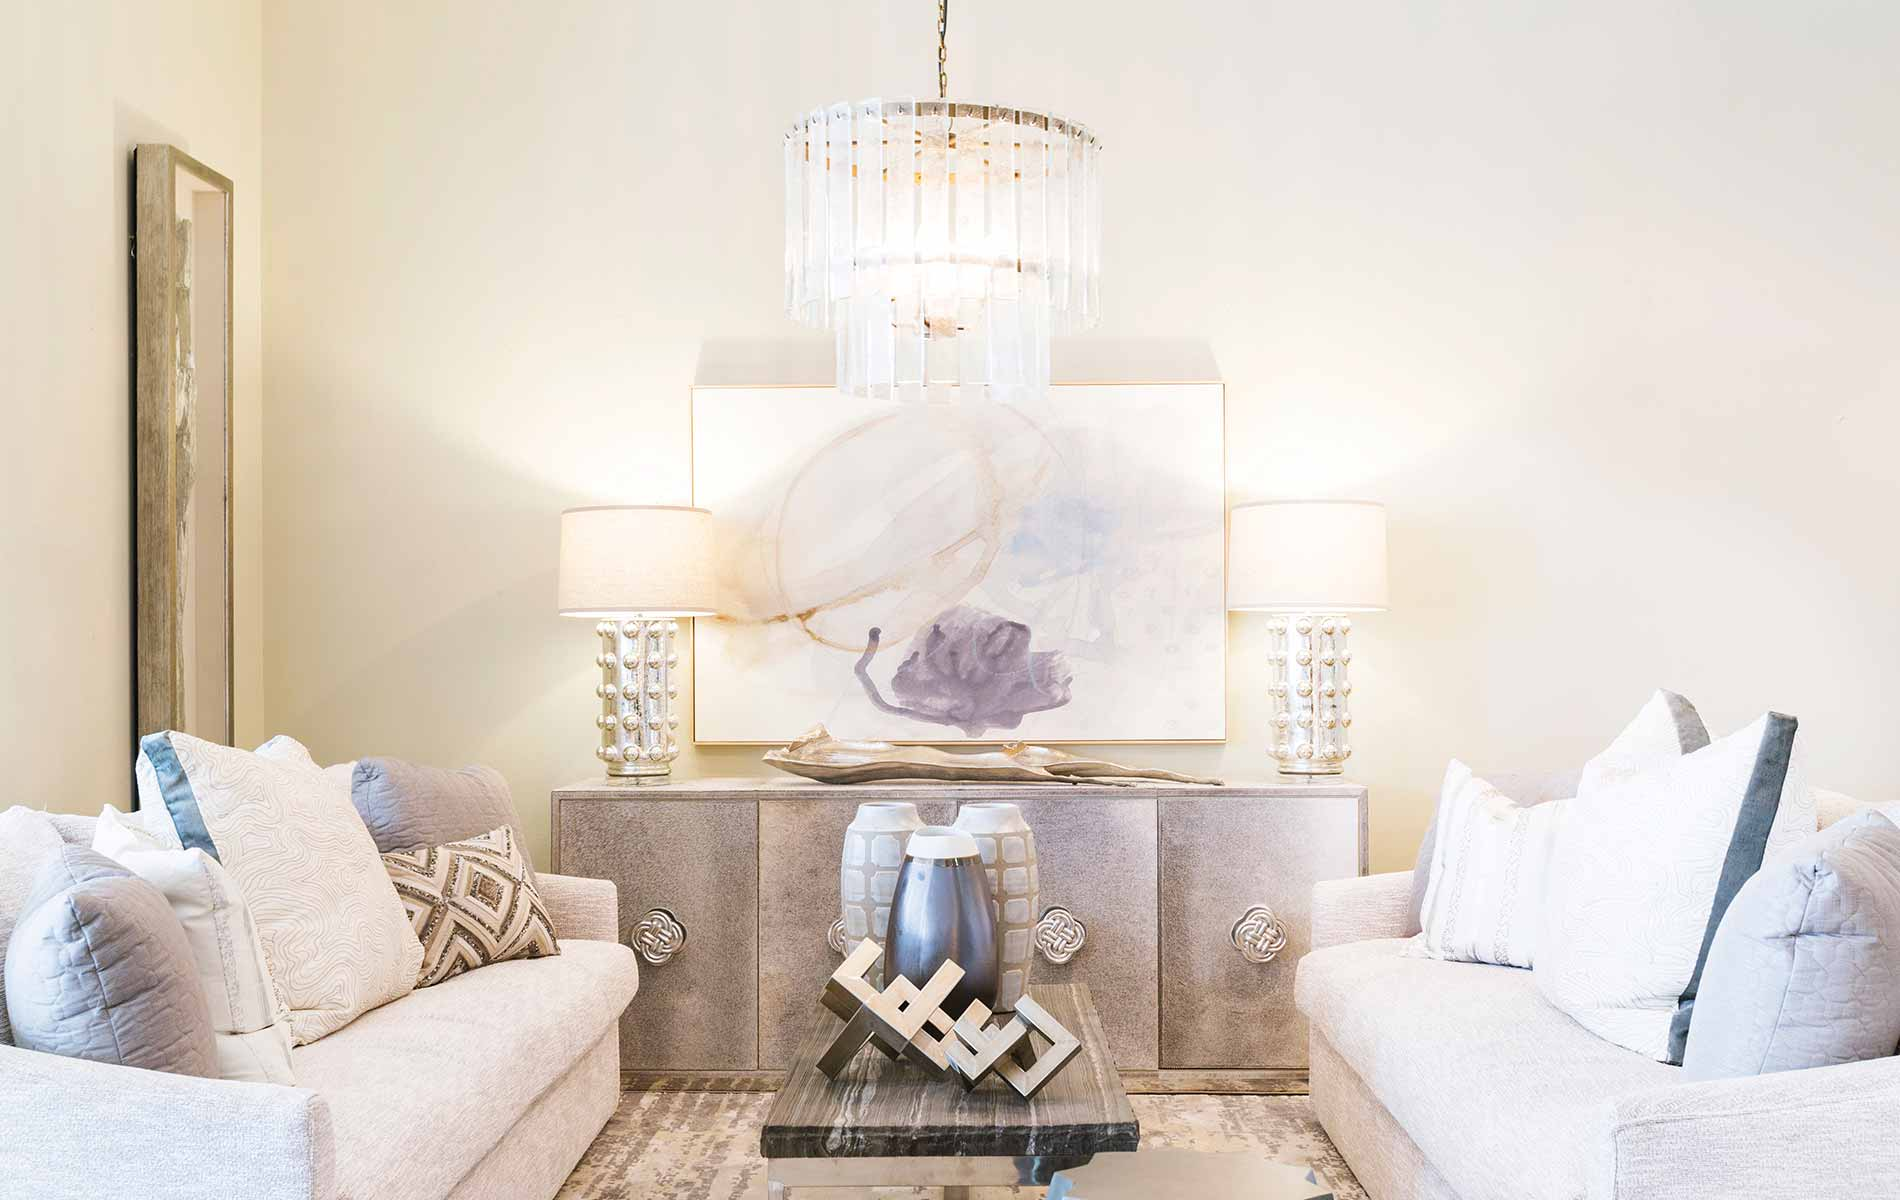 Glamorous elements are toned down with more casual textures and stone materials to create an earthy style in this living room designed by Lovelace Interiors. Heavy chenille fabrics warm up the cooler metals.